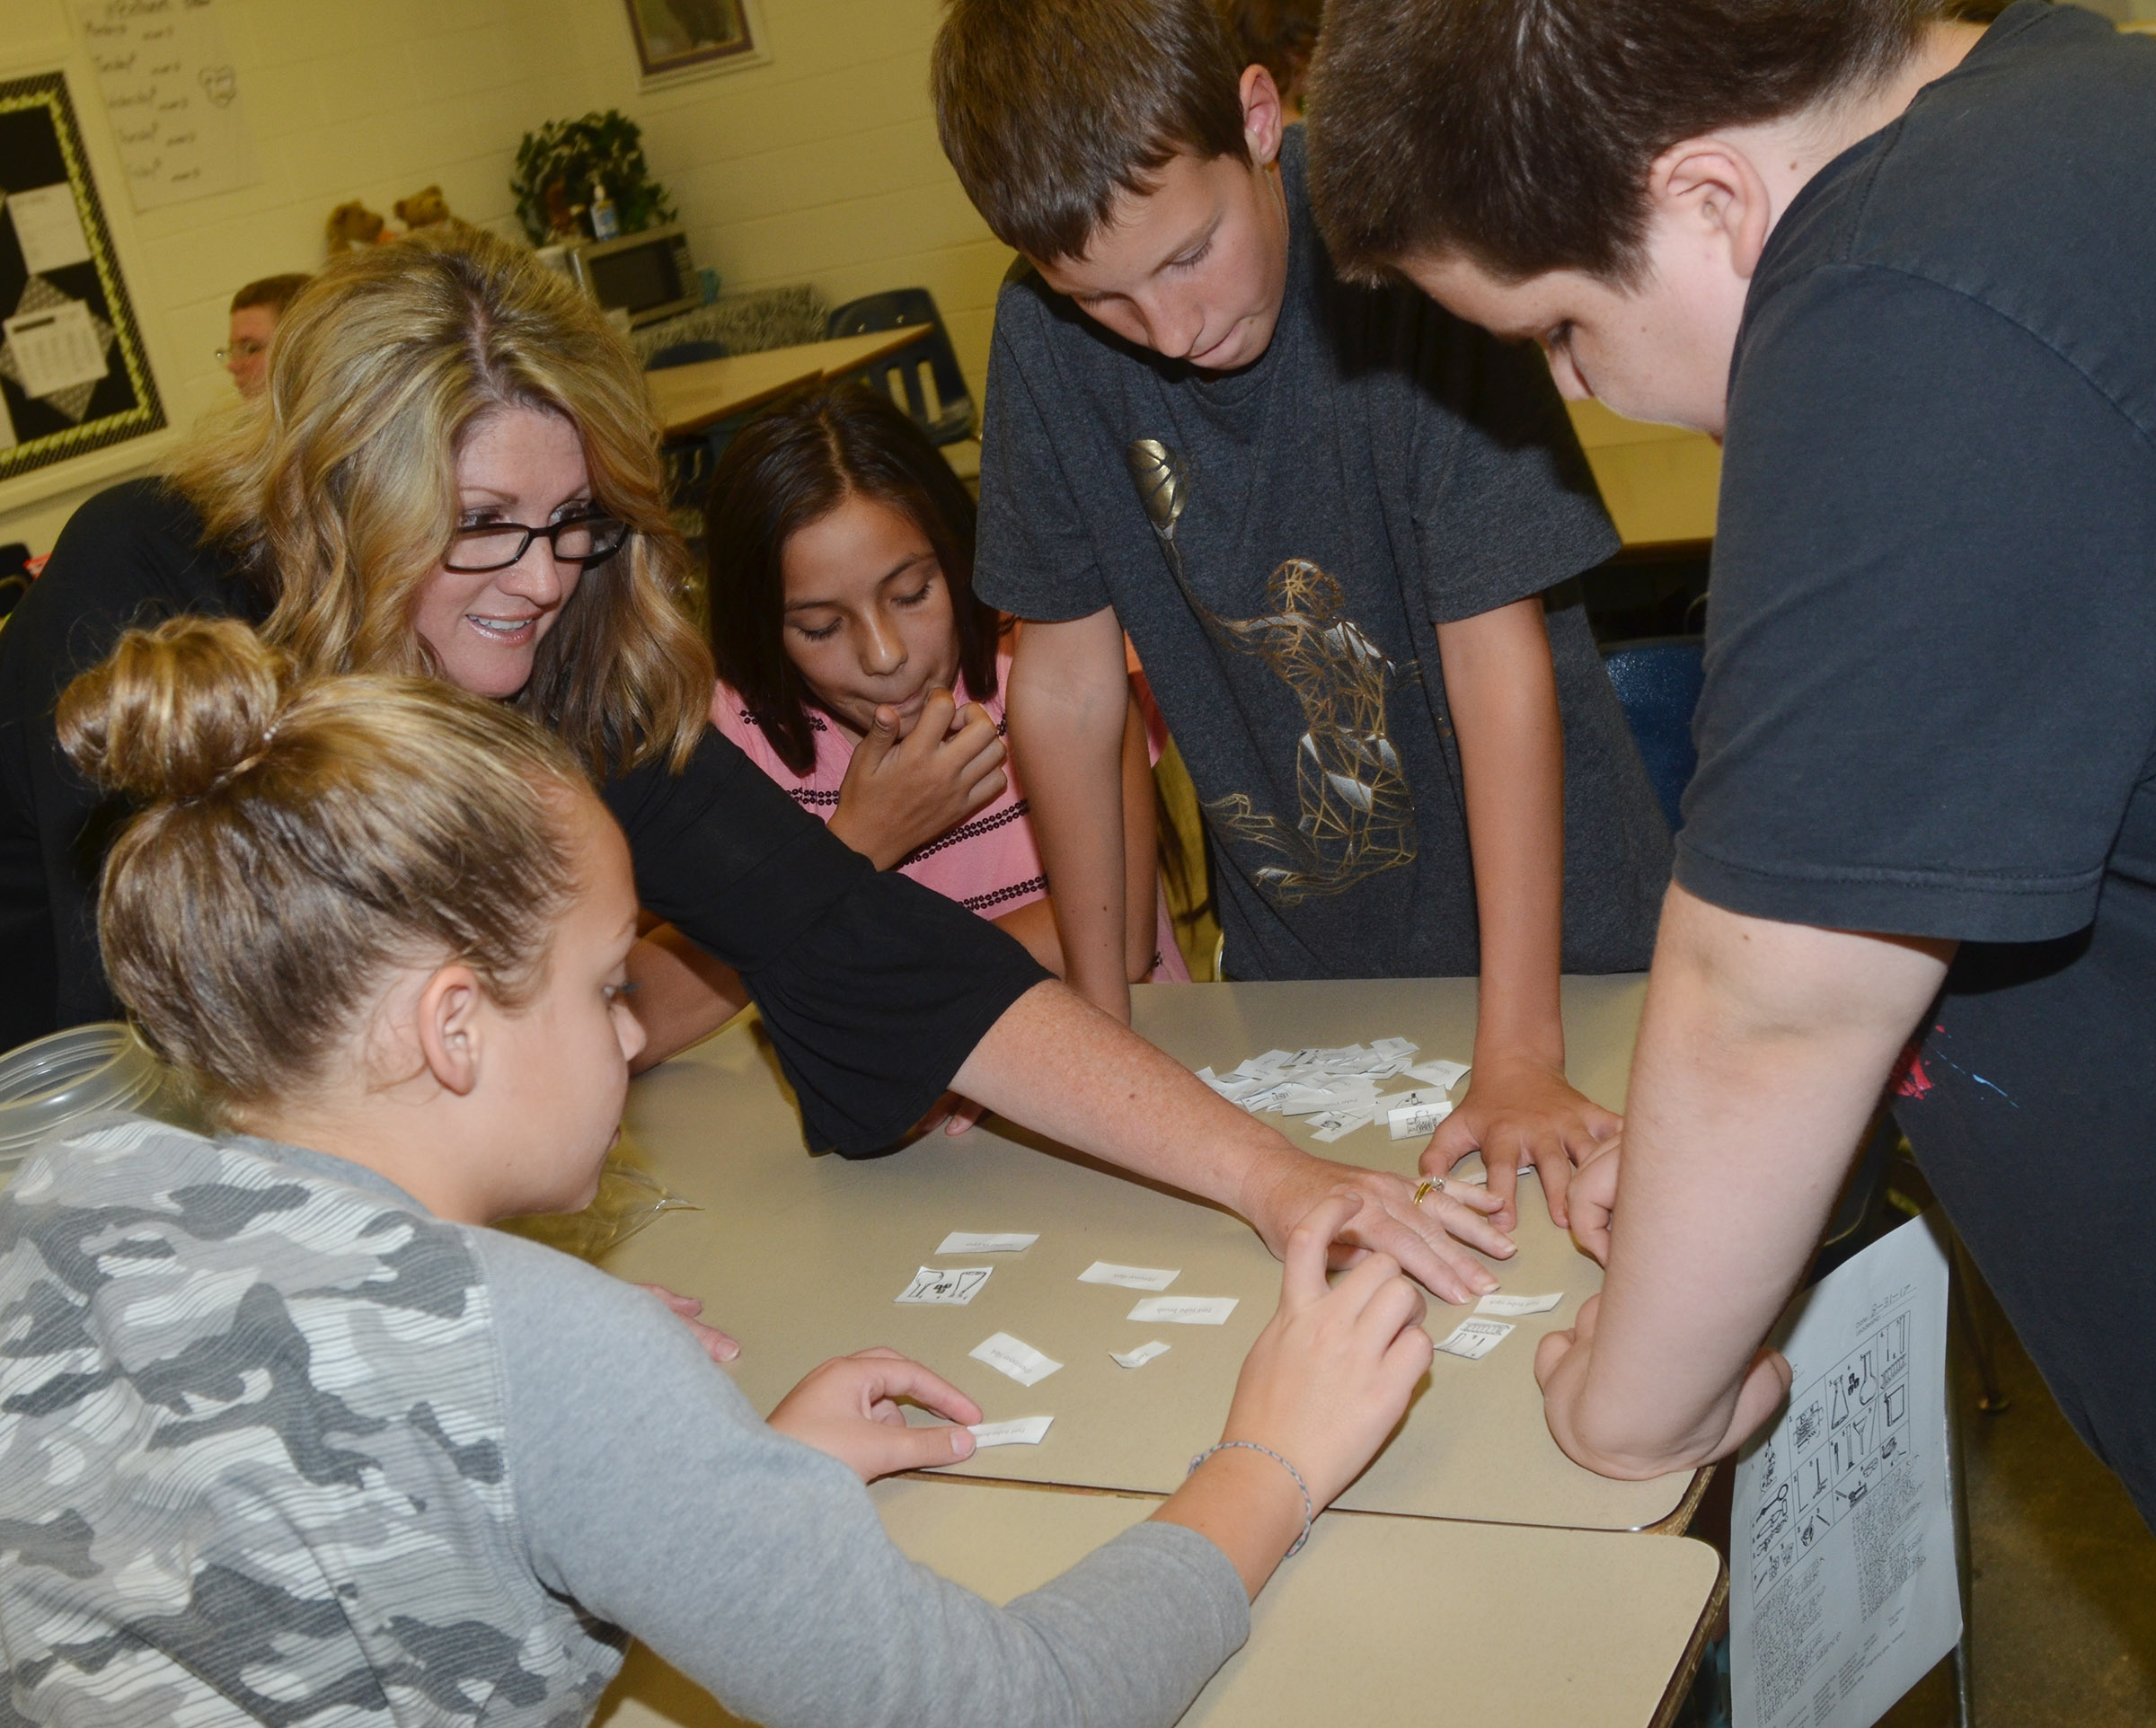 CES fifth-grade teacher Donna White checks her students' vocabulary terms to see if they are paired with the correct pictures. From left are Deanna Reardon, Marissa Segura, Rowan Petett and Joseph Gutierrez.